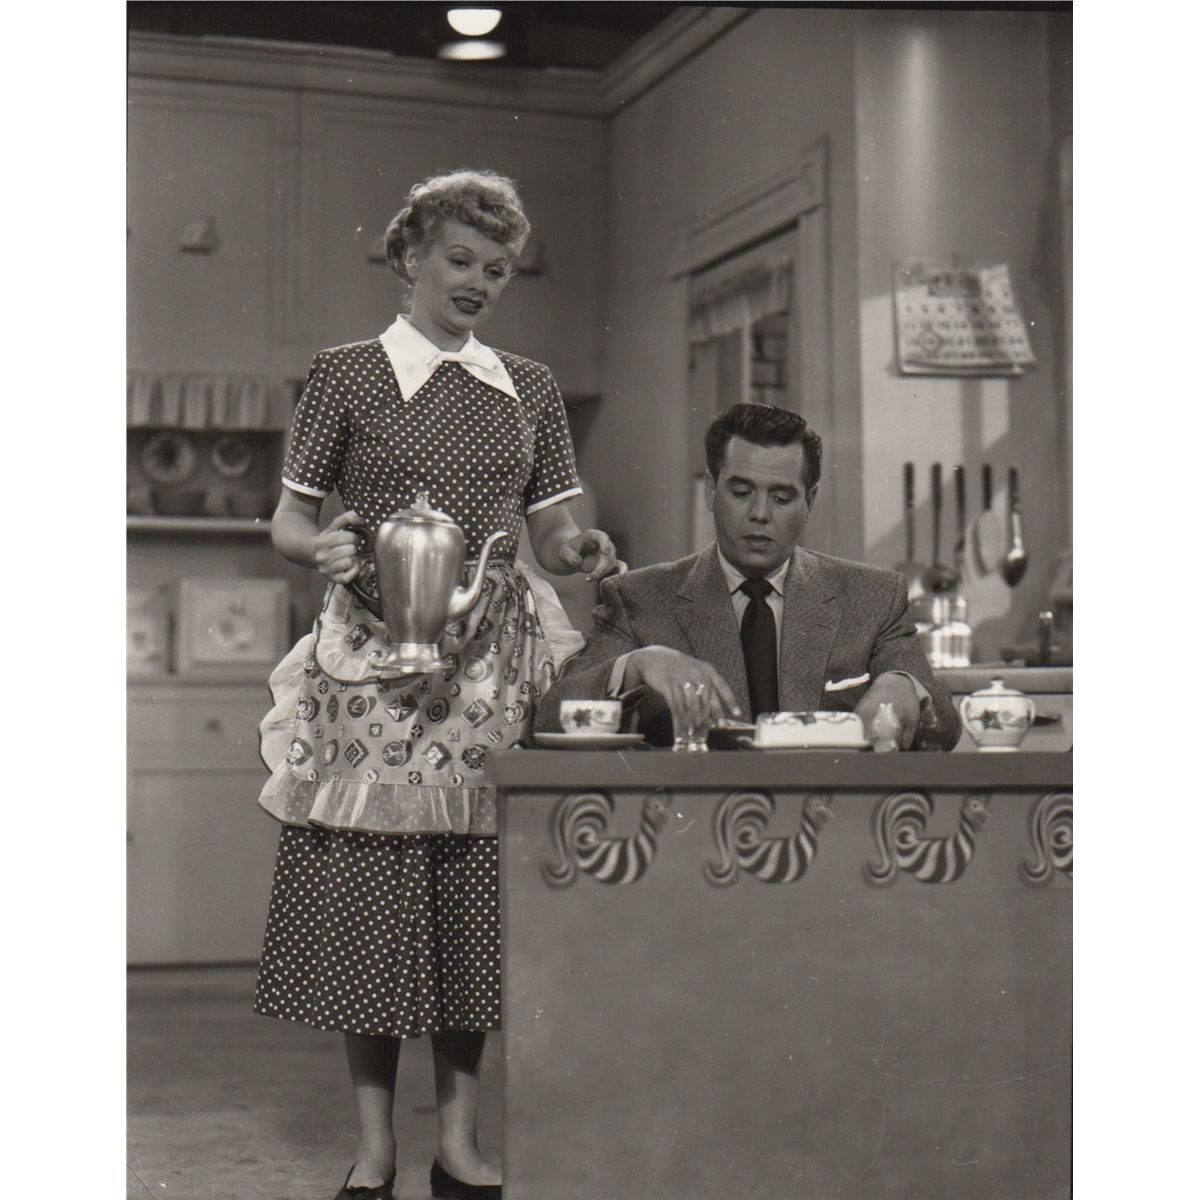 Image 12 Original Set Of Kitchenware Props Used In I Love Lucy